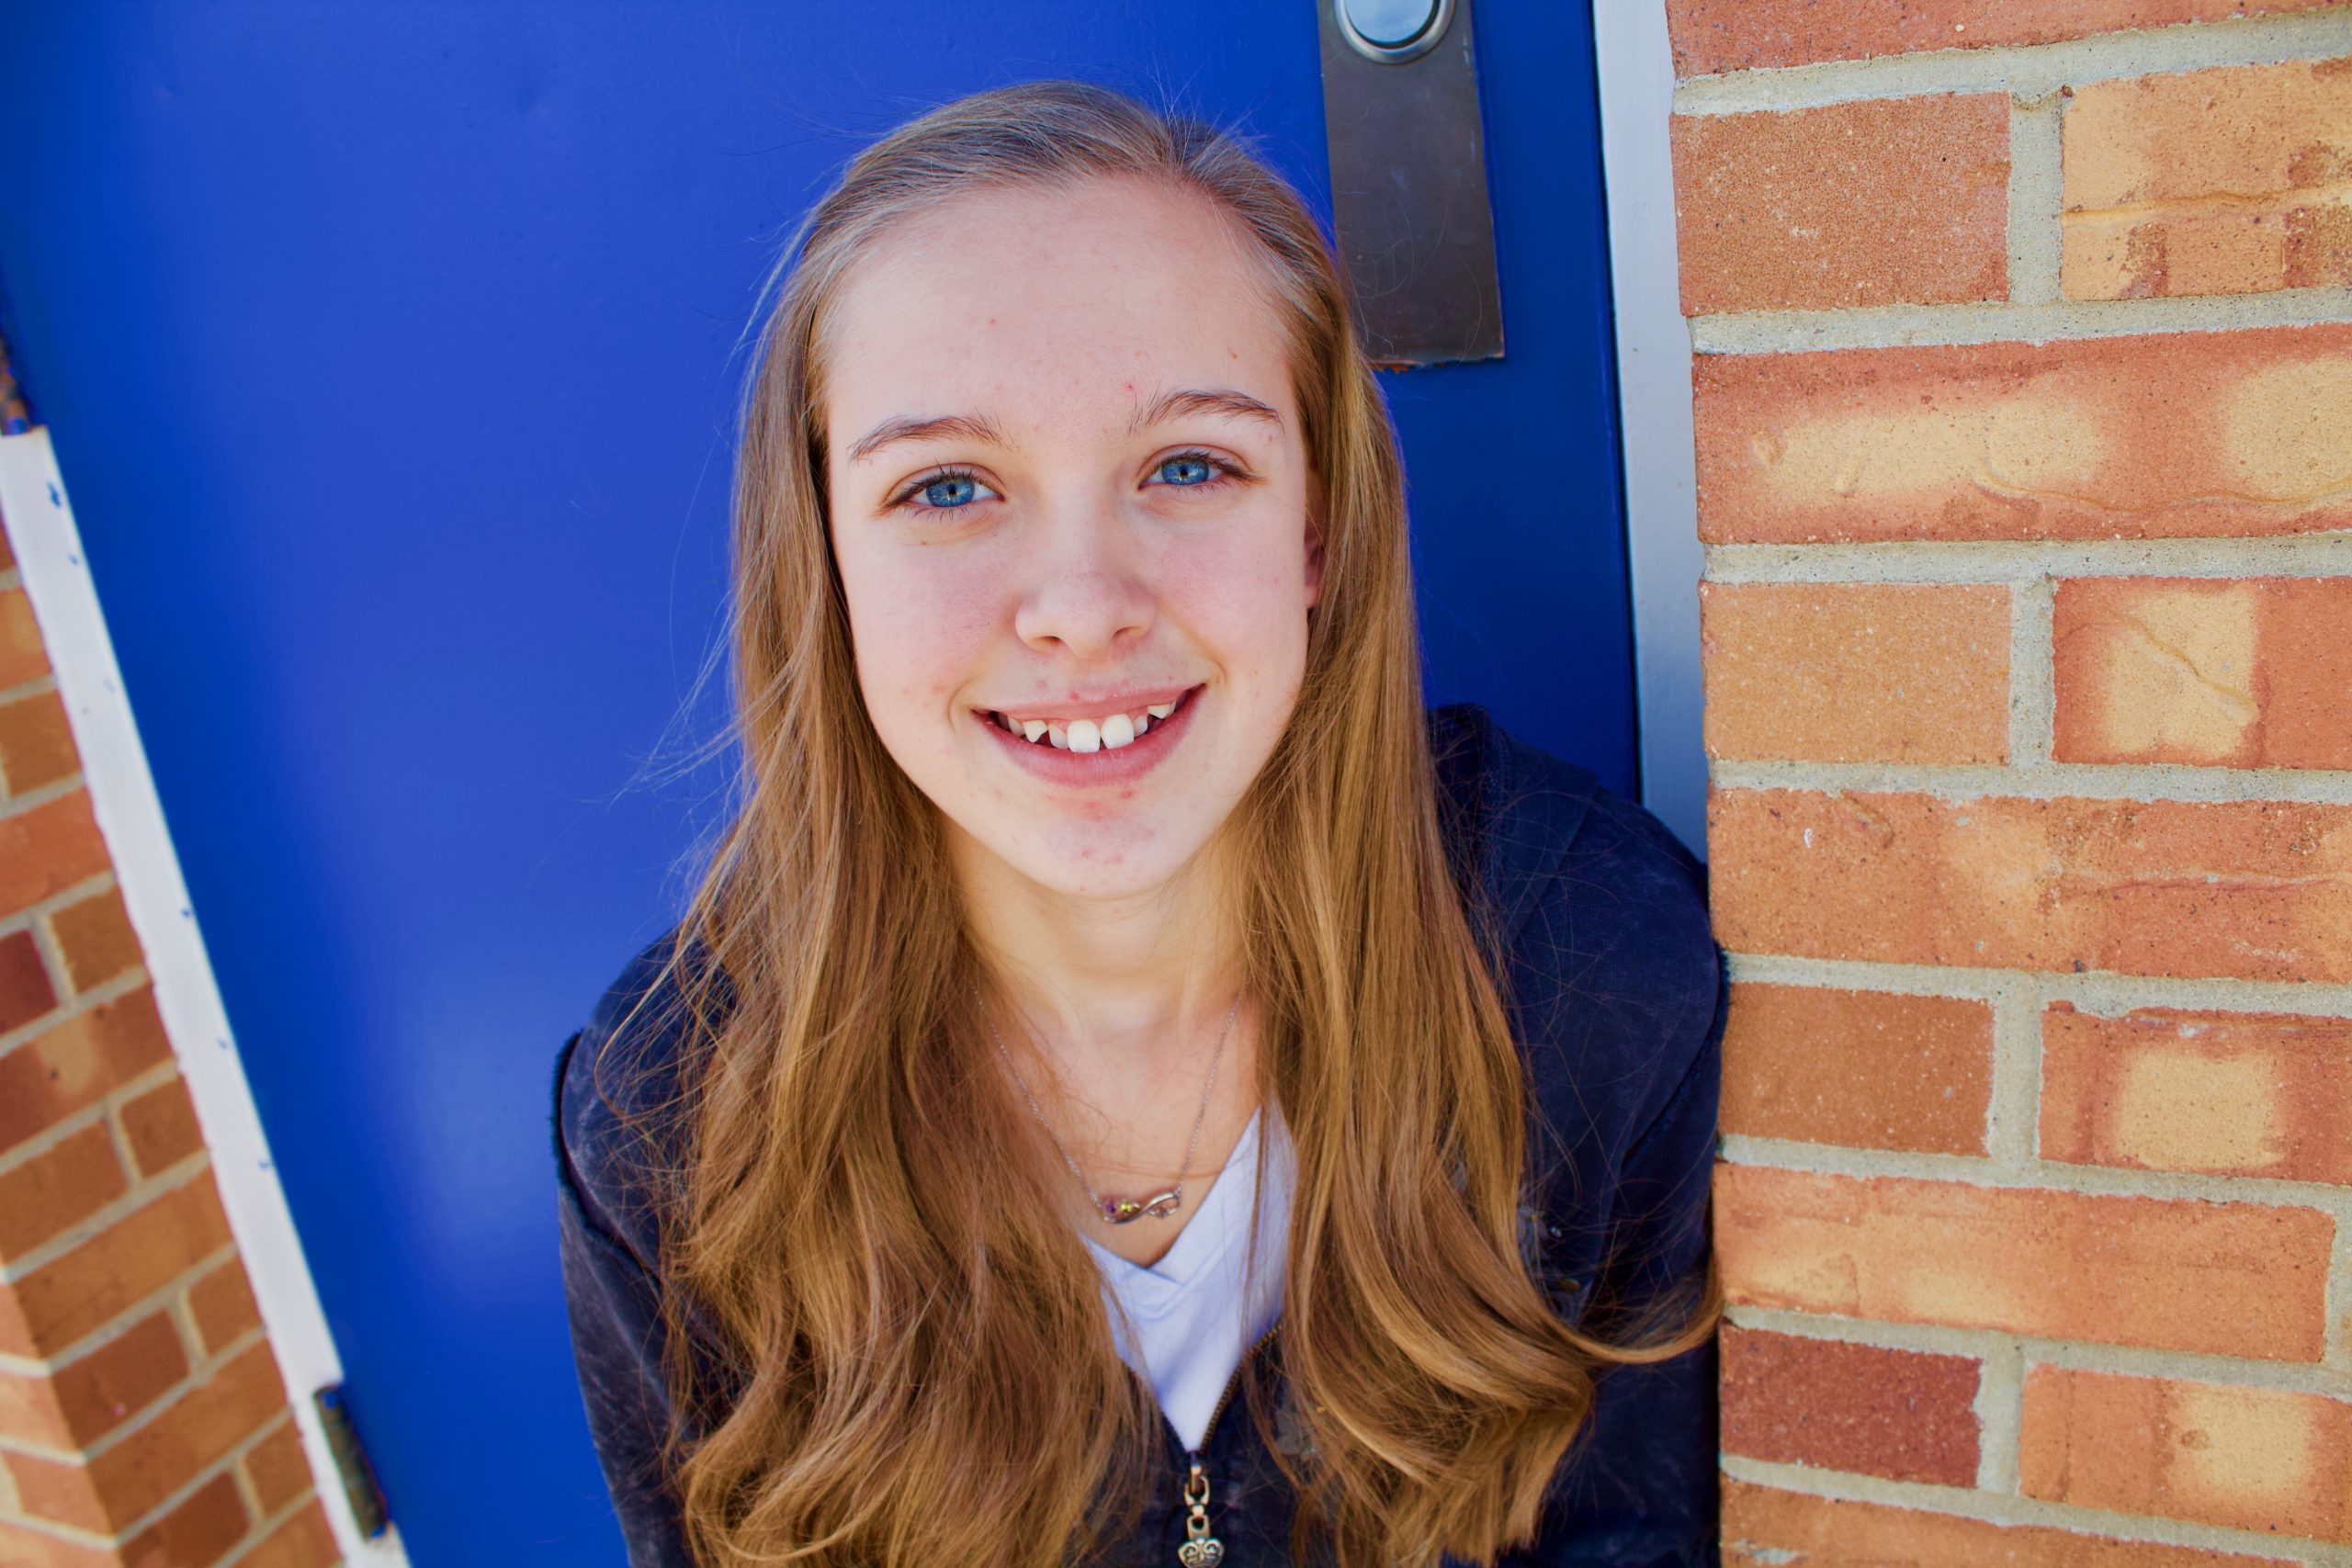 Boys & Girls Club of Sweetwater County Names Mikayla Maes 2019 Youth of the Year